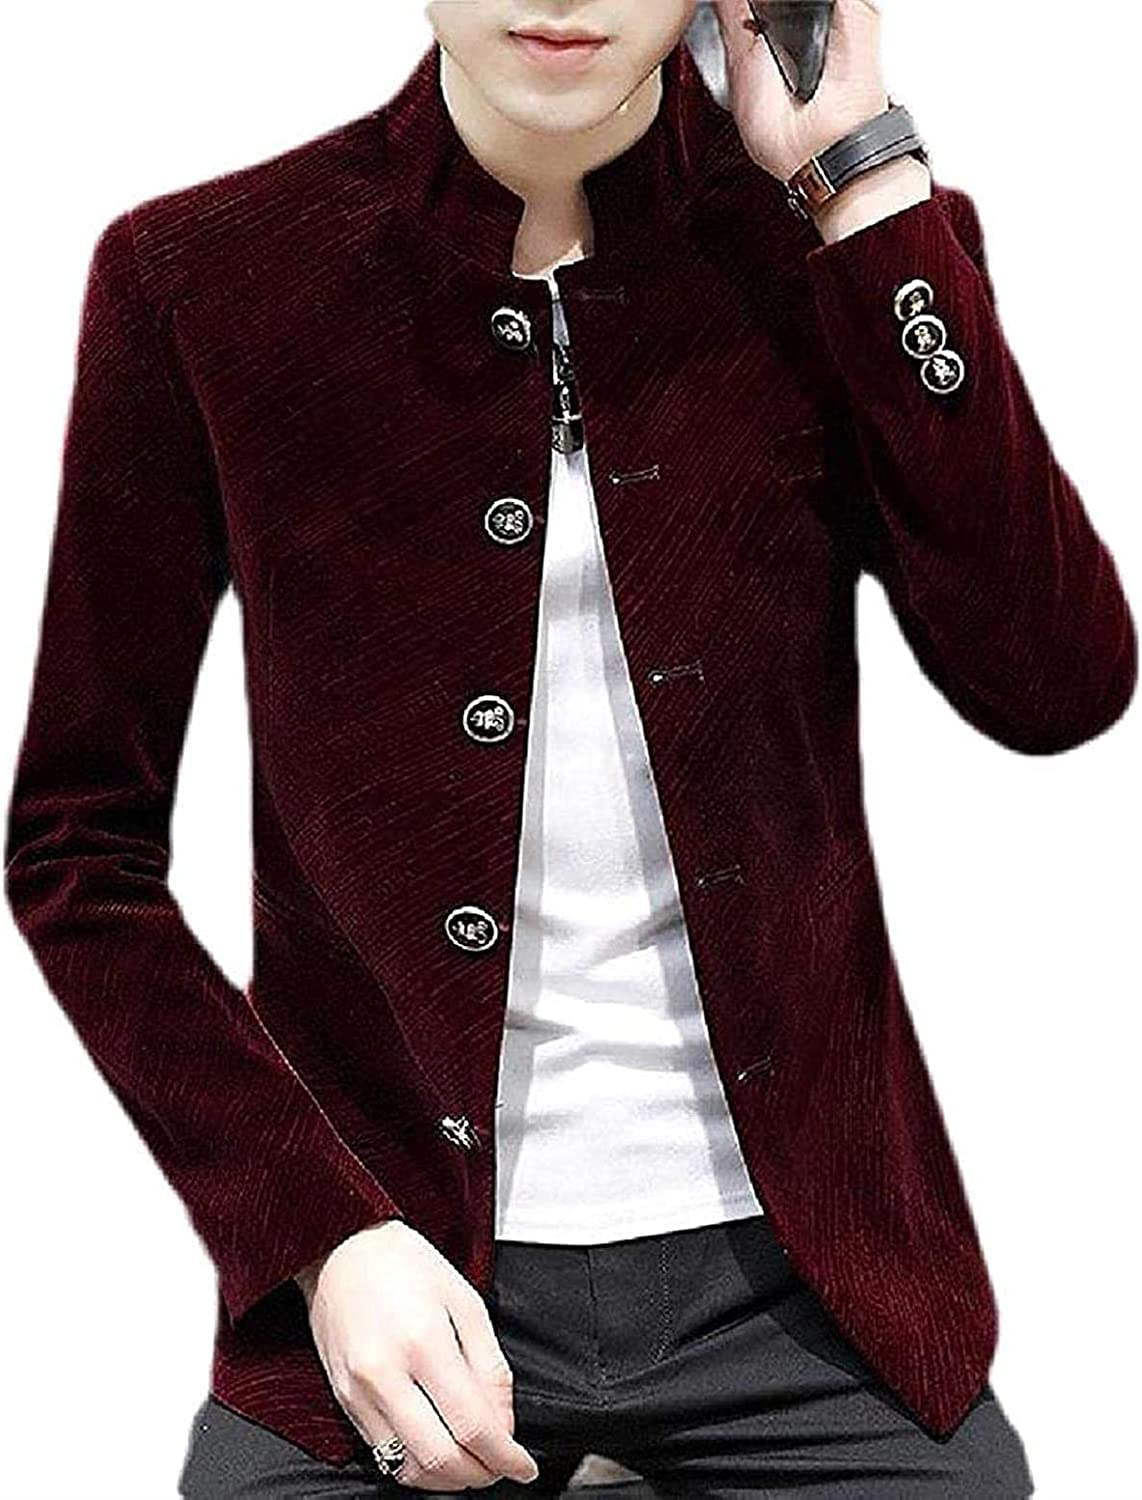 Mens Business Slim online shopping Fit Stand Collar Single Blazer Suit Outlet ☆ Free Shipping Breasted